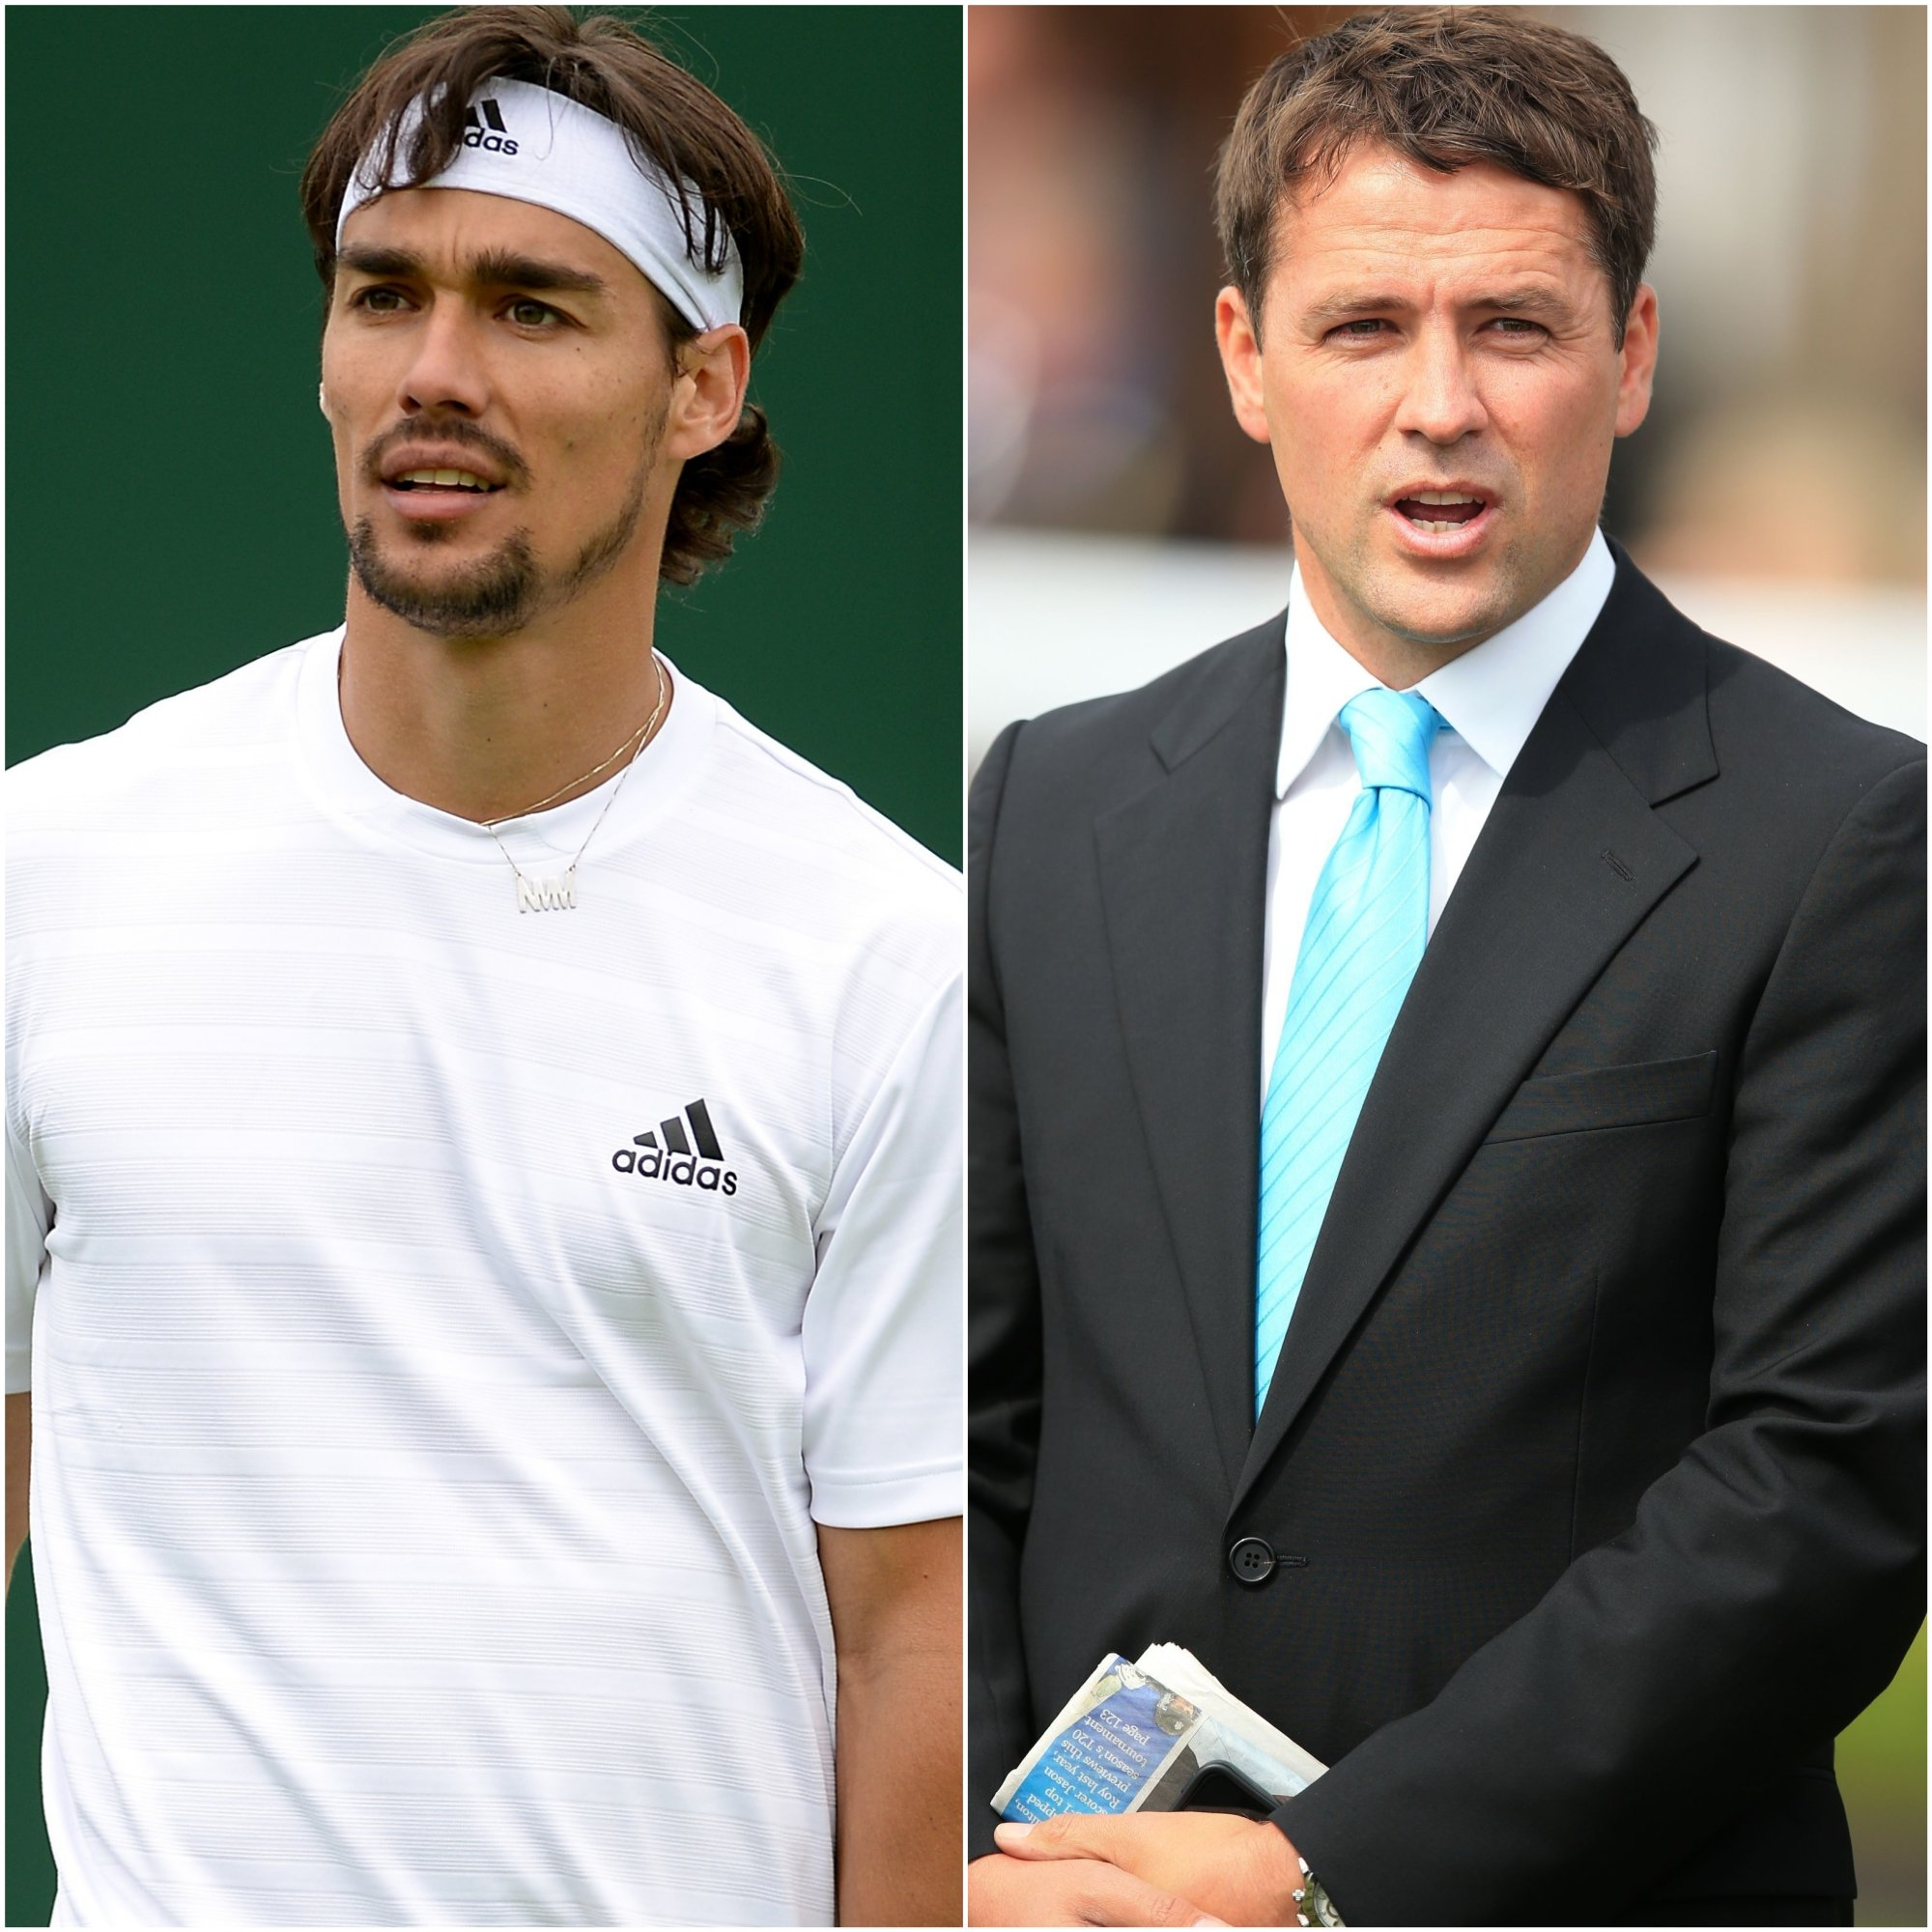 Fognini has surgery while Owen regrets biking – what sport stars did on Sunday